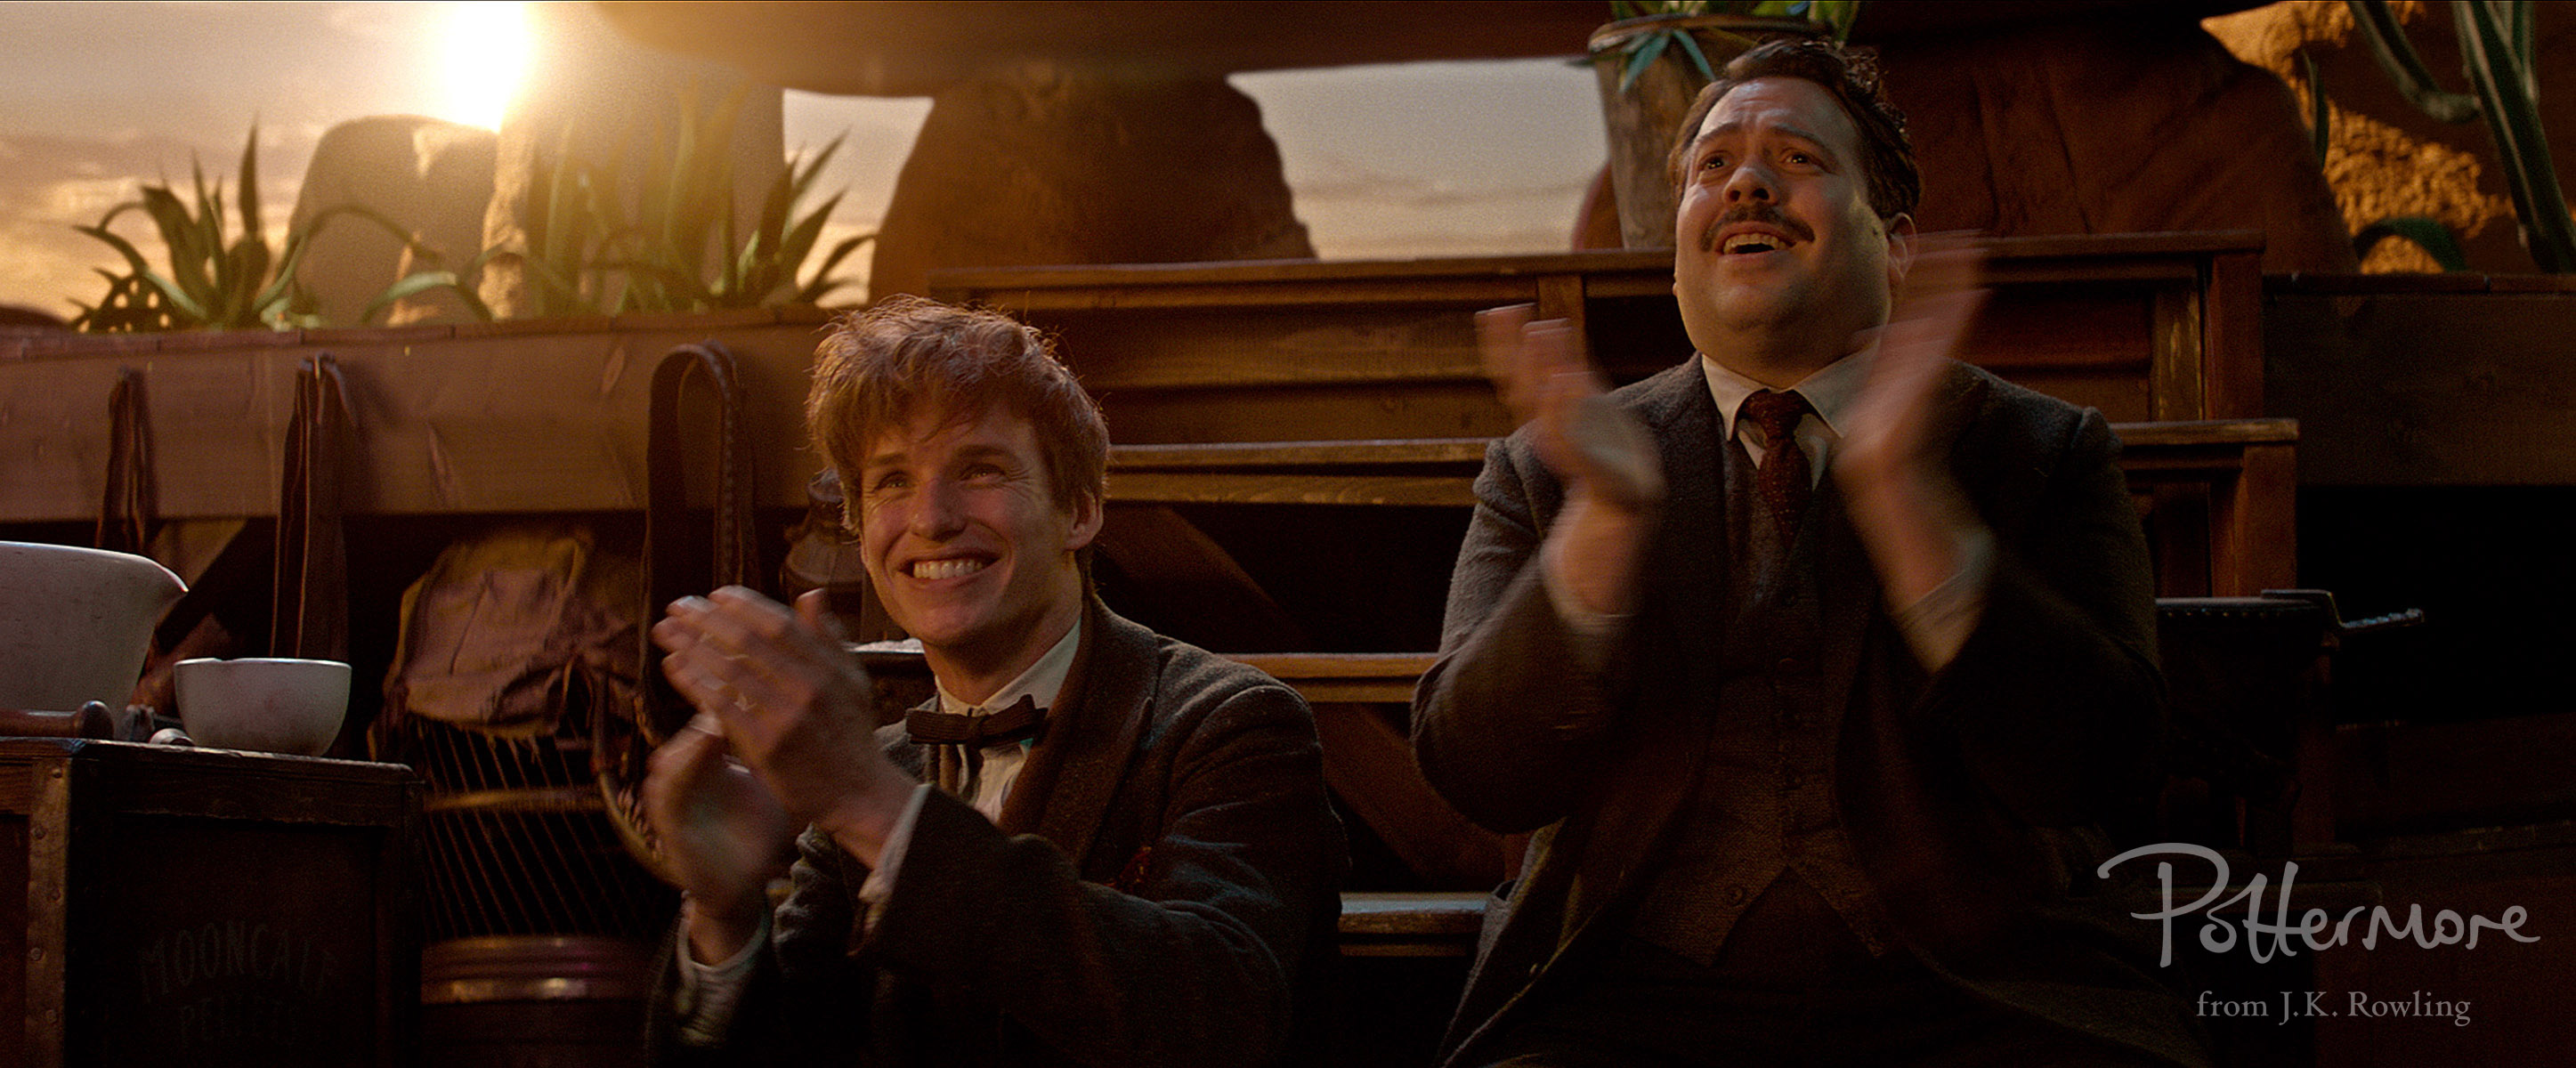 Newt Scamander and Jacob Kowalski in Fantastic Beasts and Where to Find Them